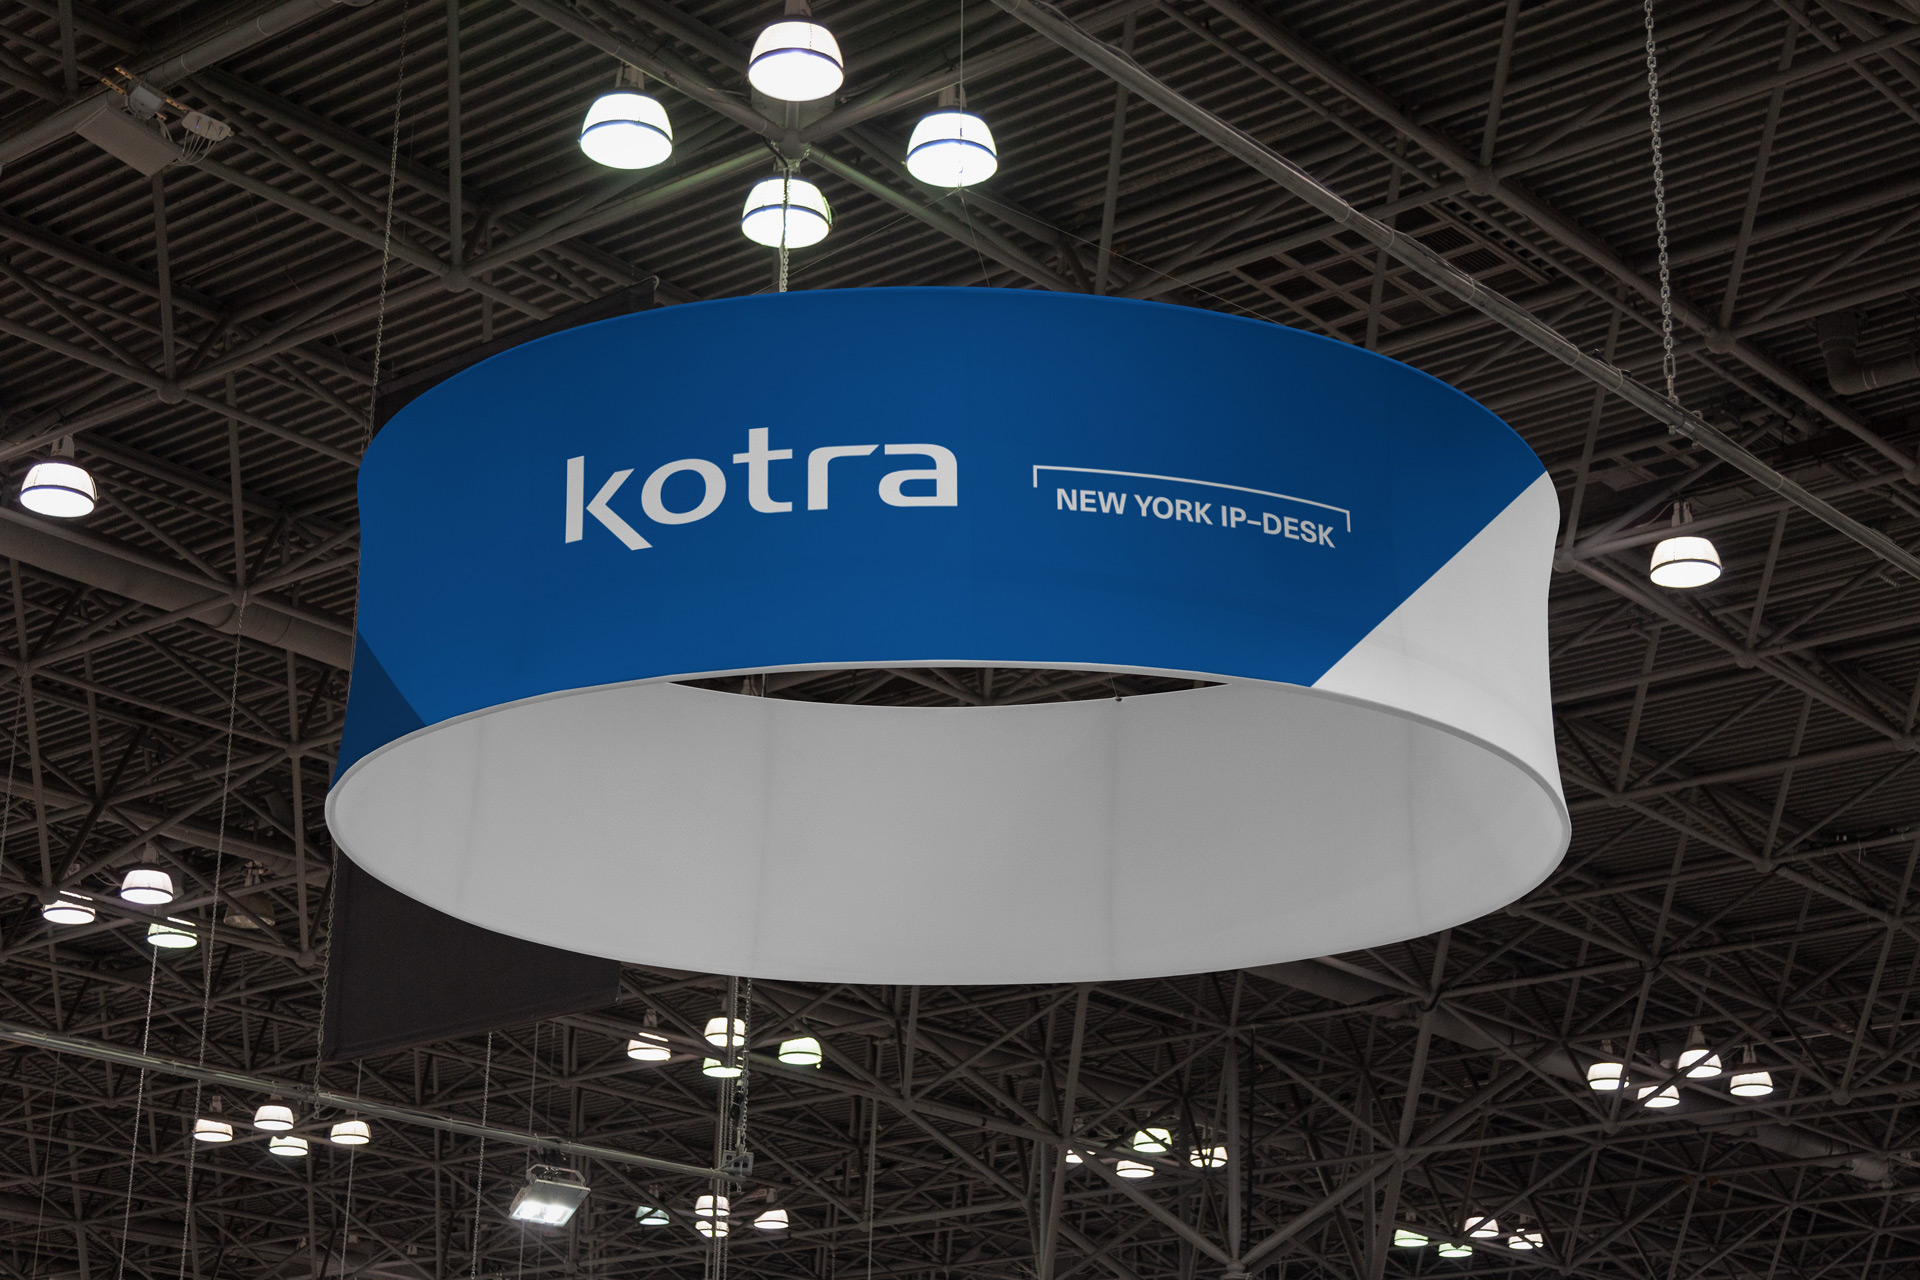 KOTRA New York IP-Desk